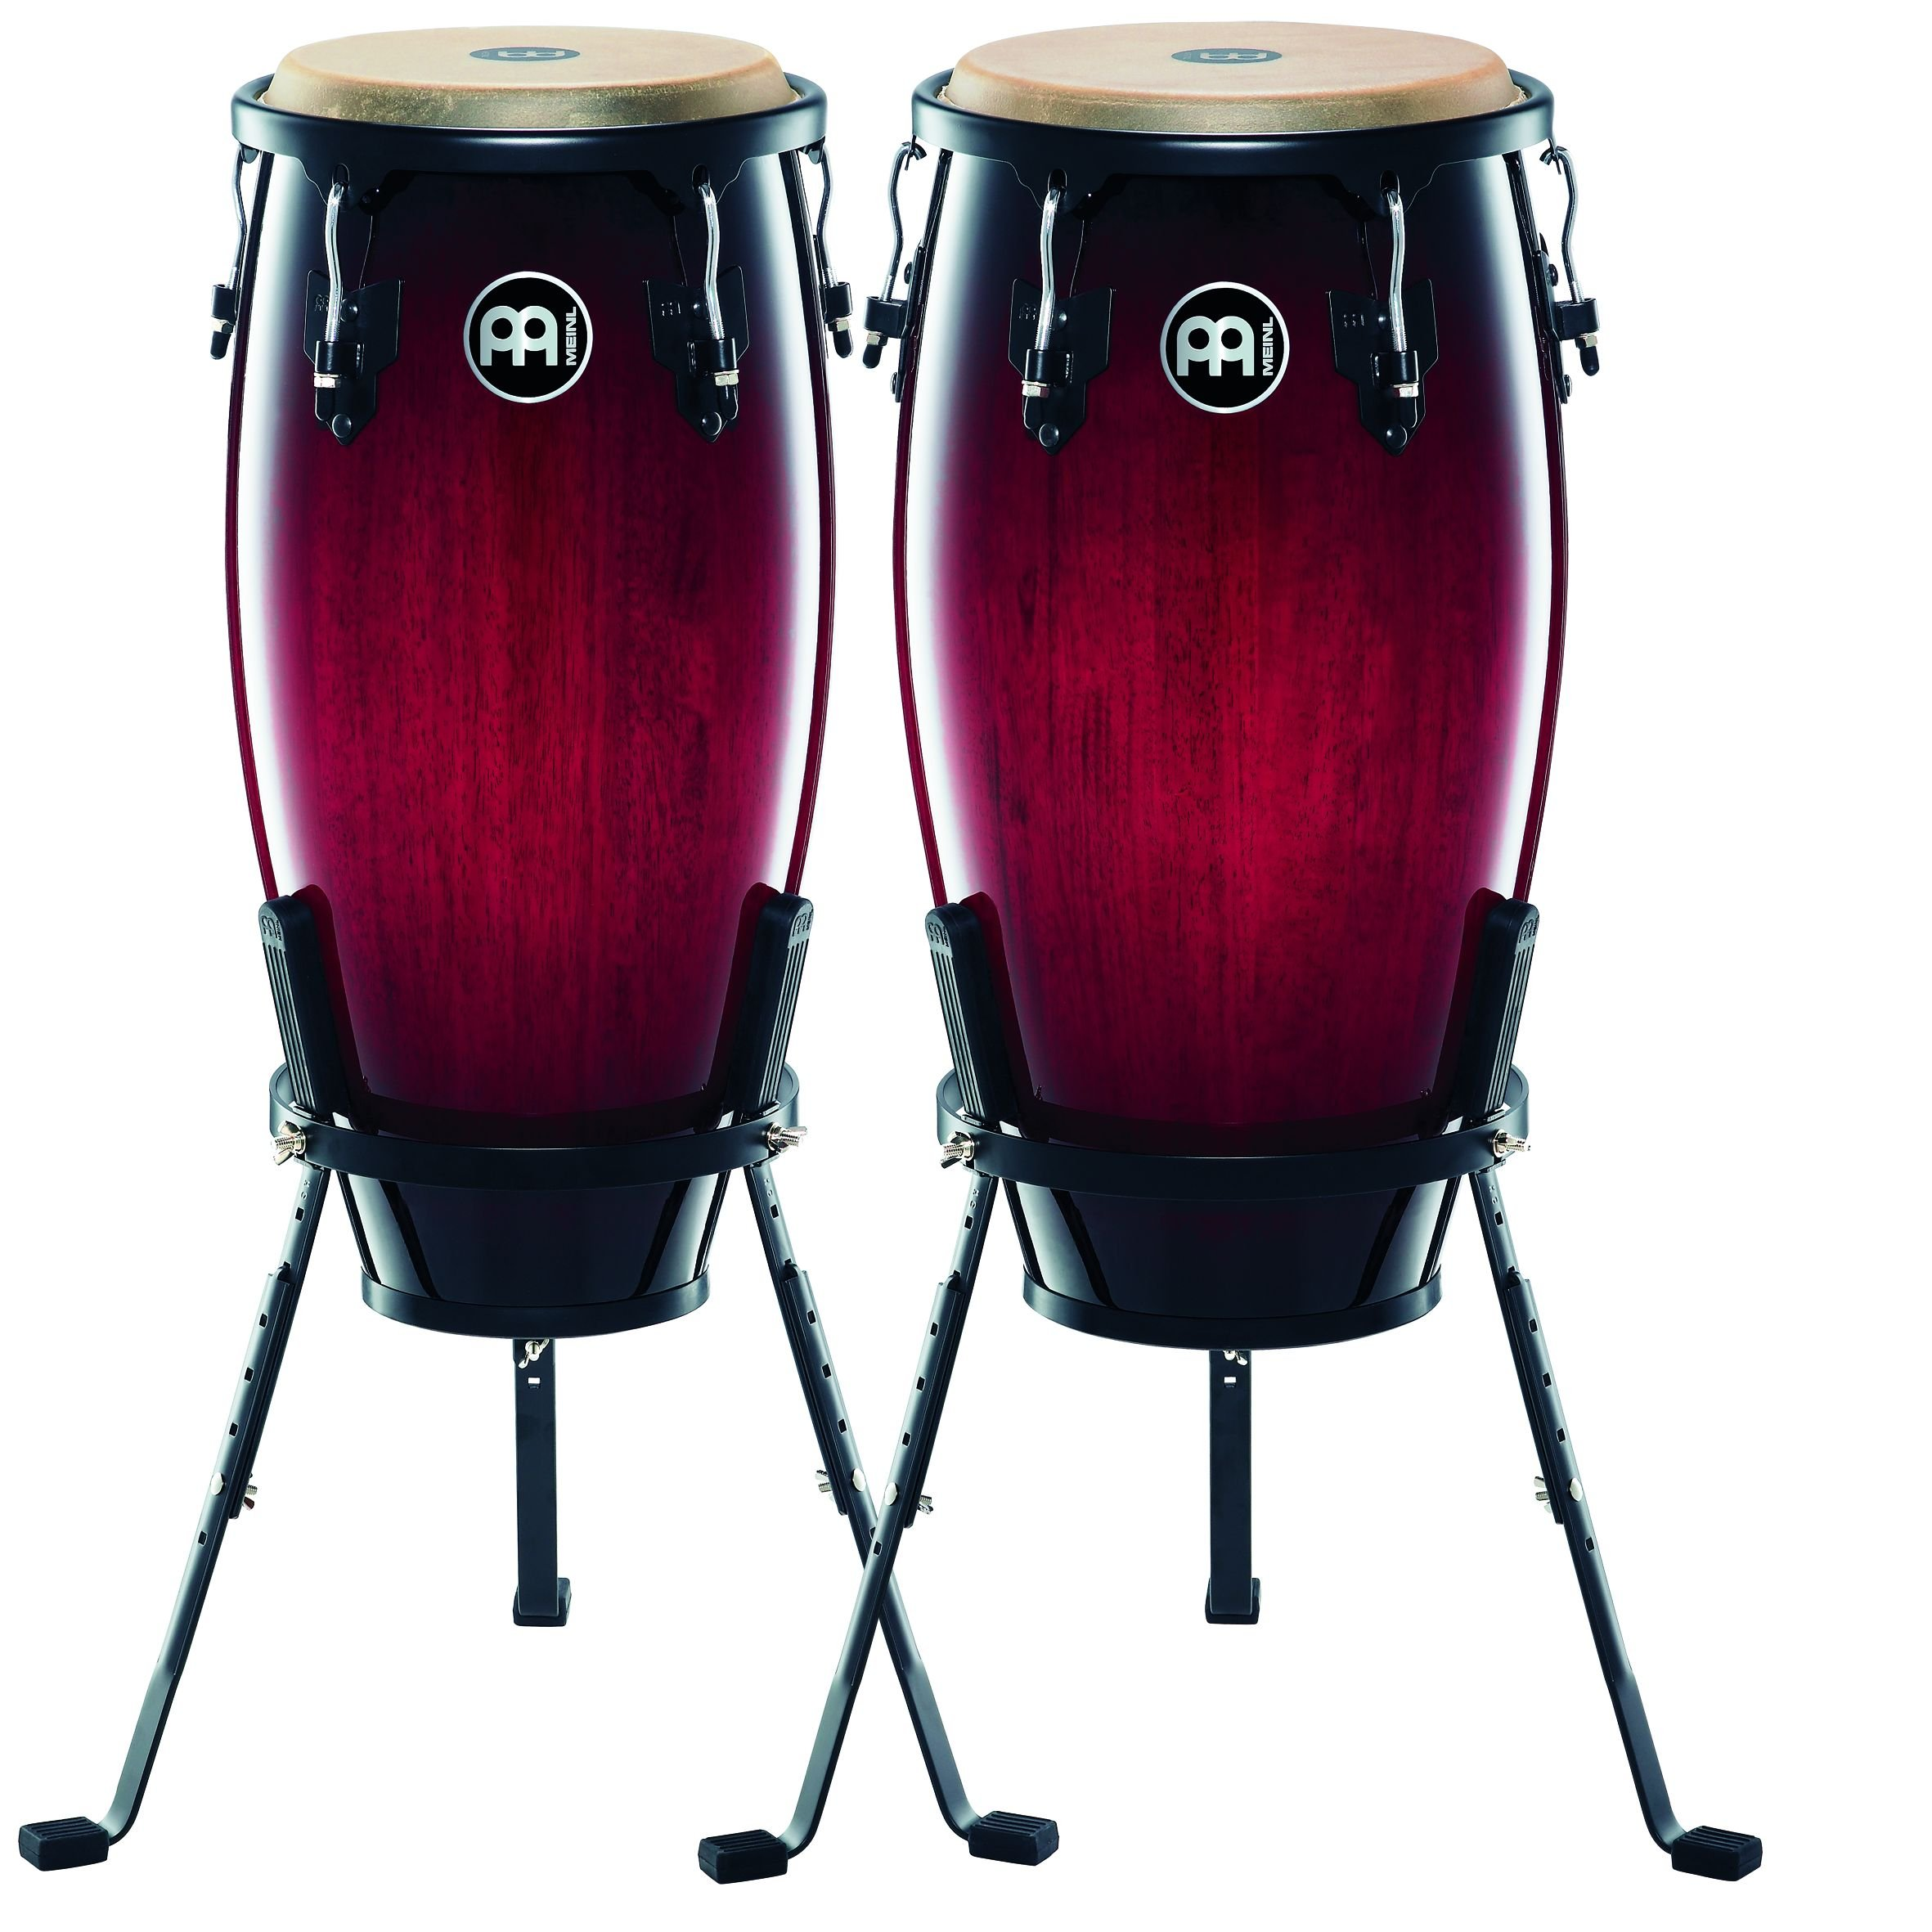 Meinl Percussion HC512WRB Headliner Series 11-Inch and 12-Inch Conga Set With Basket Stands, Wine Red Burst